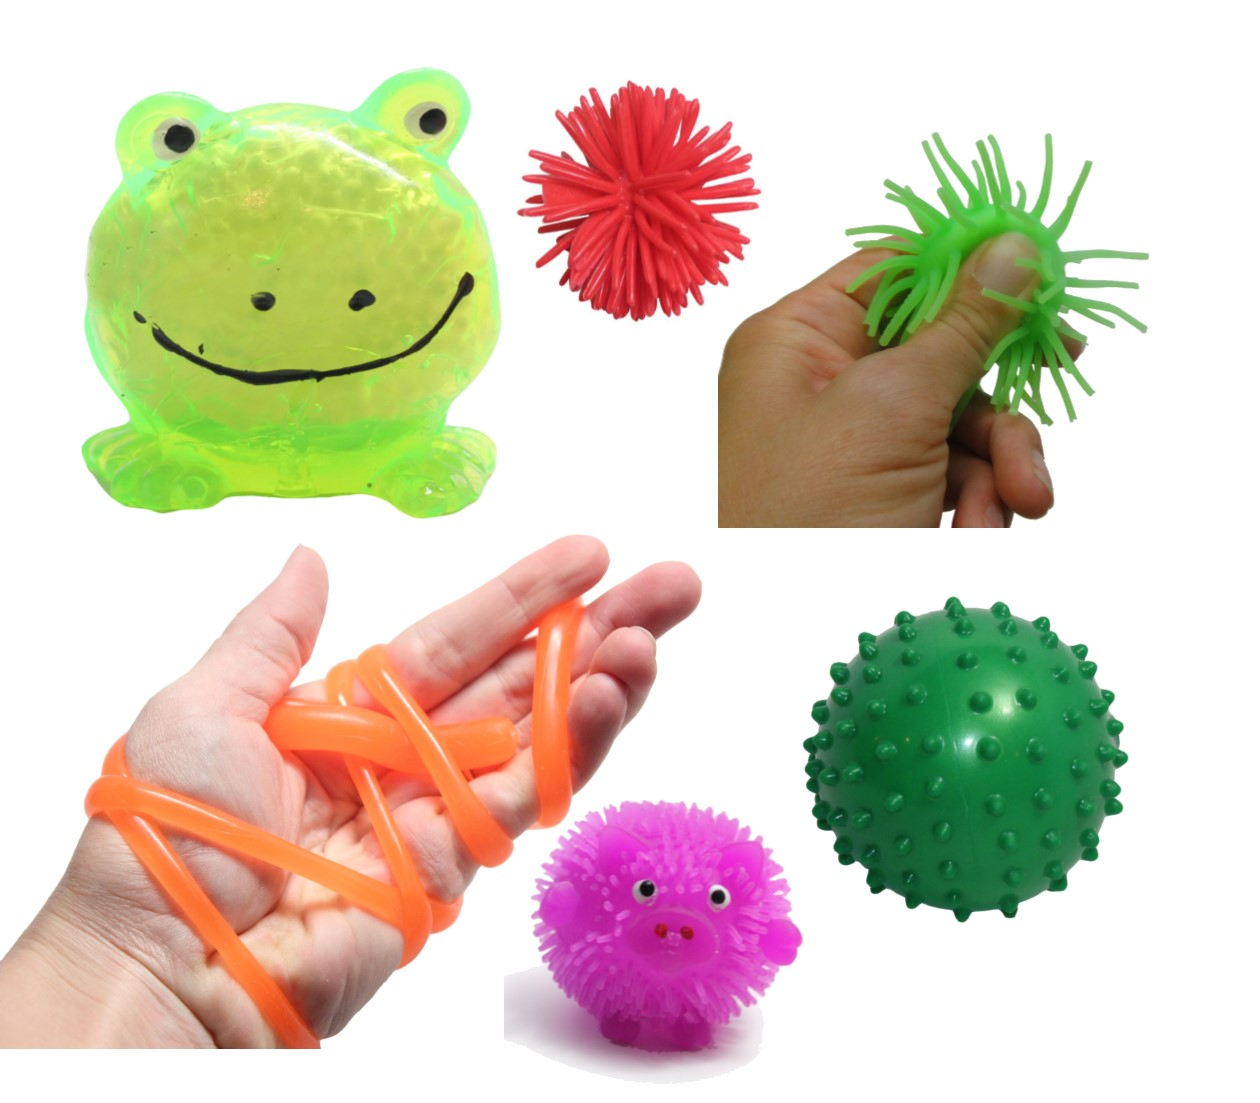 CLEARANCE - SALE - Sensory Bundle #4- Fidget Set for Students, Adults and Children